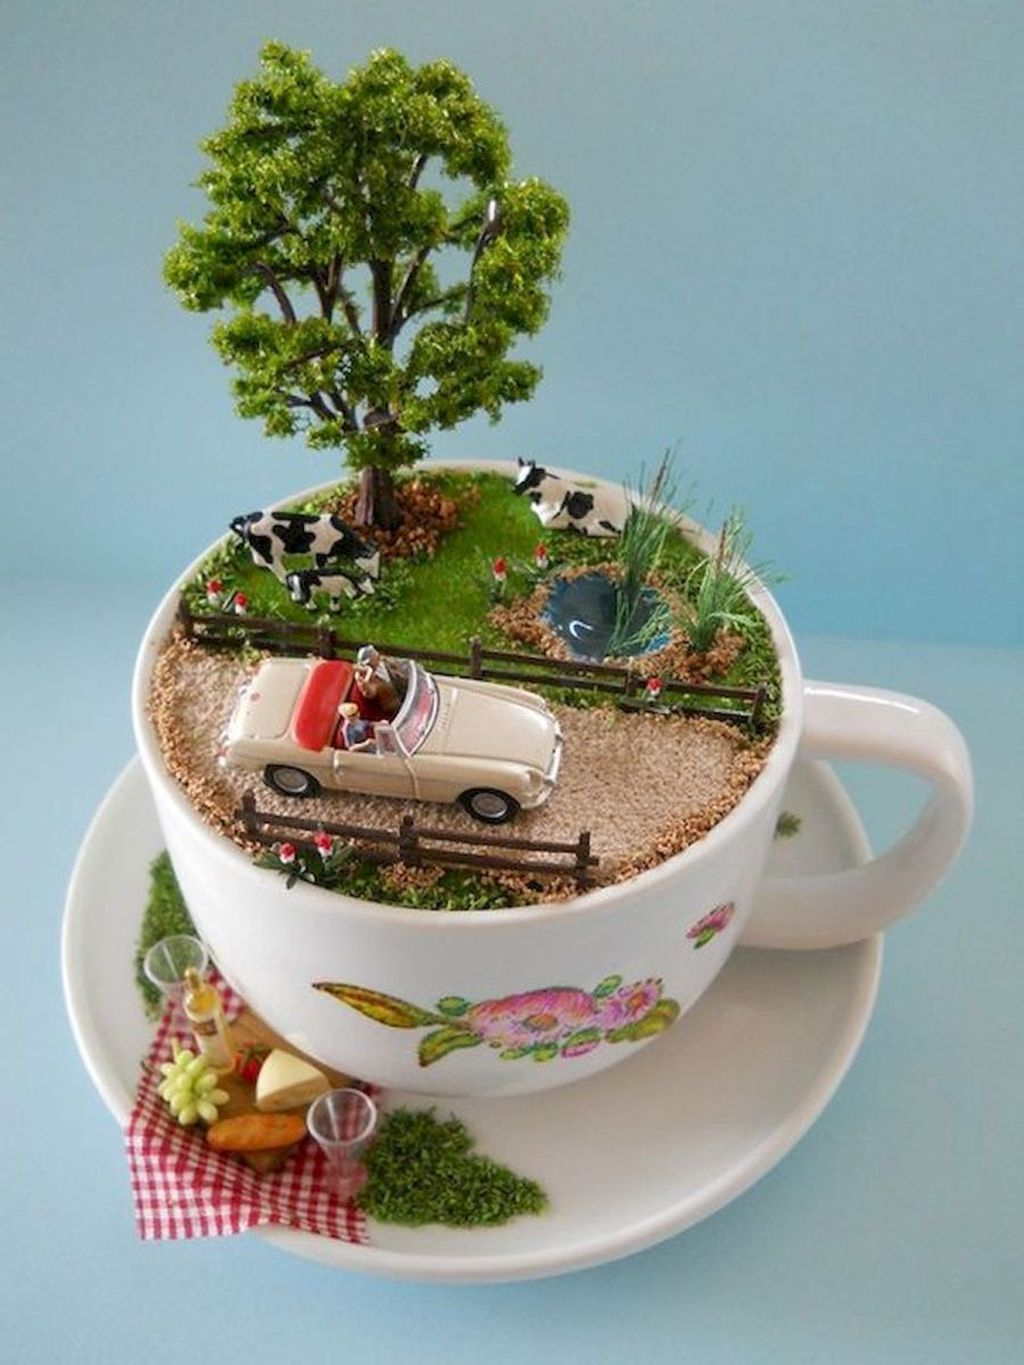 Inspiring Diy Teacup Mini Garden Ideas To Add Bliss To Your Home 01